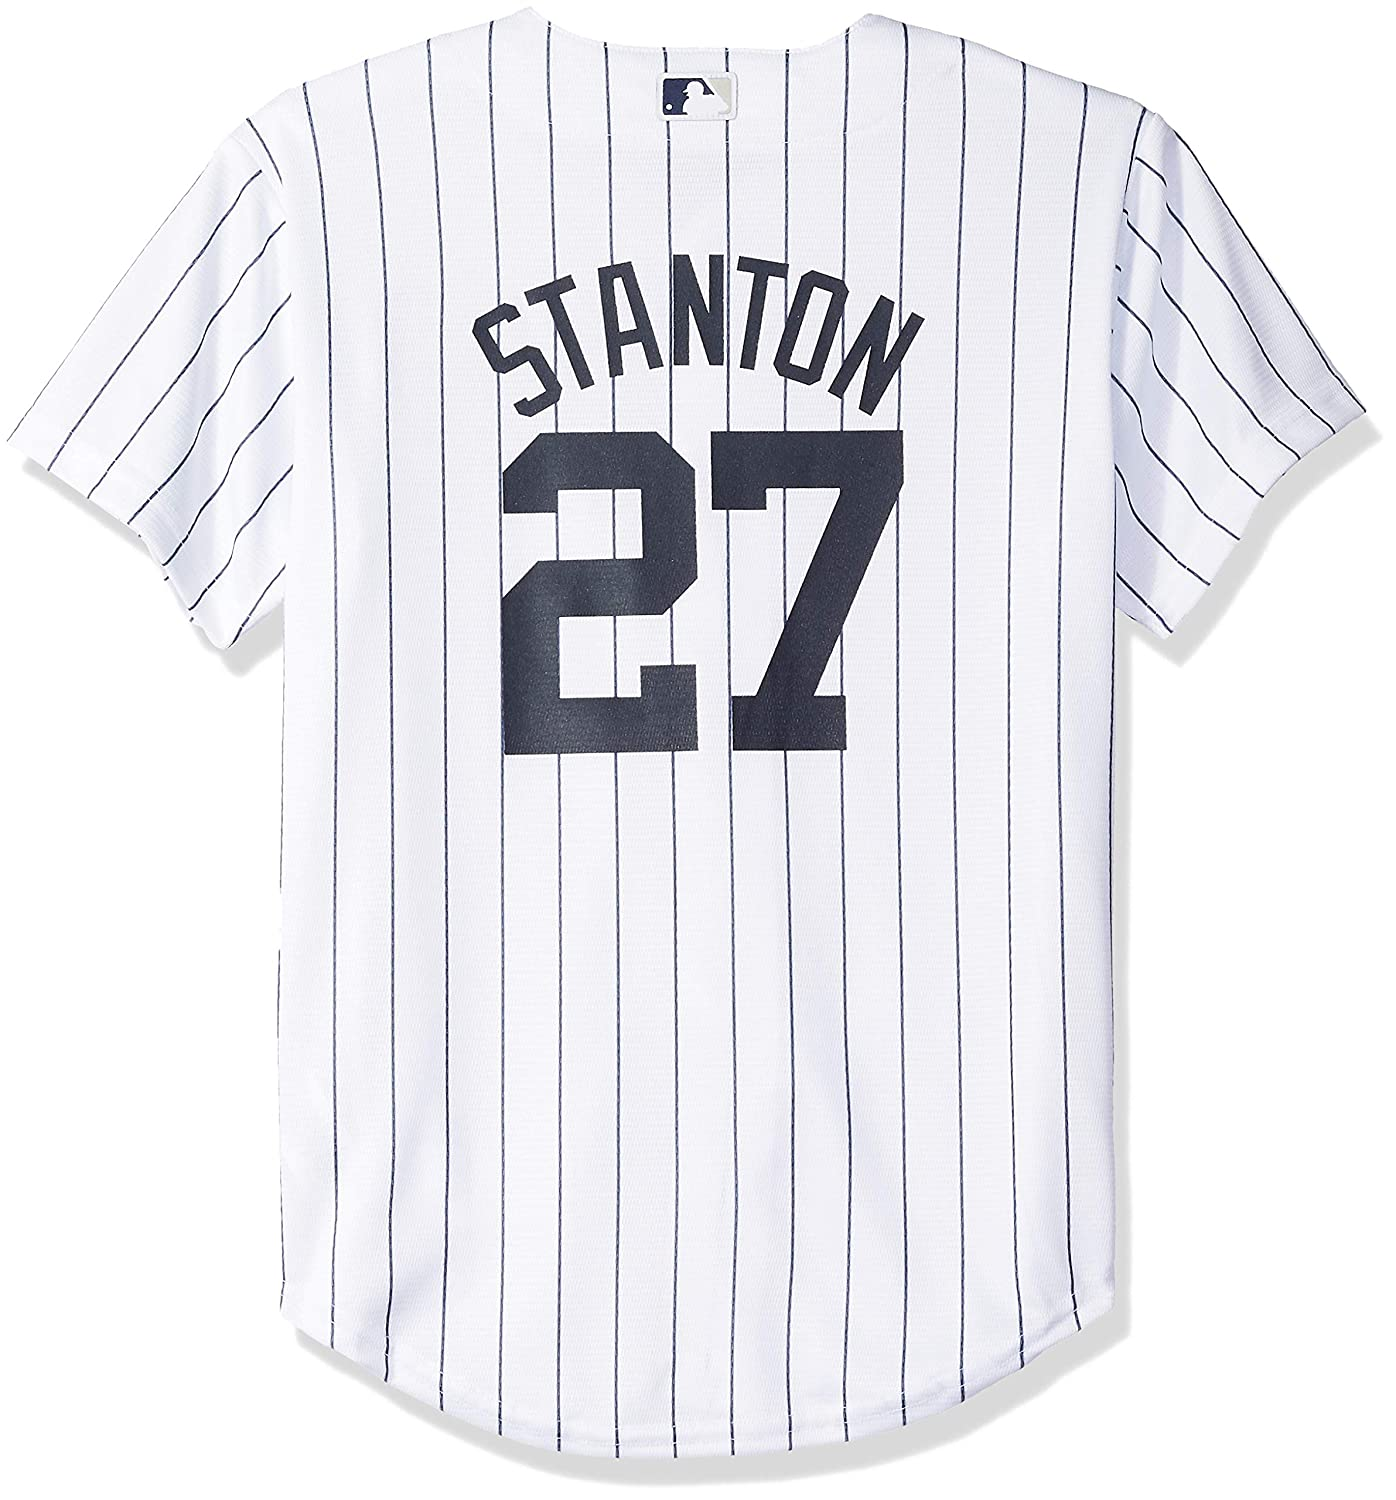 Number 27 Twenty Seven Sports Number Youth Jersey T-shirt Front Print